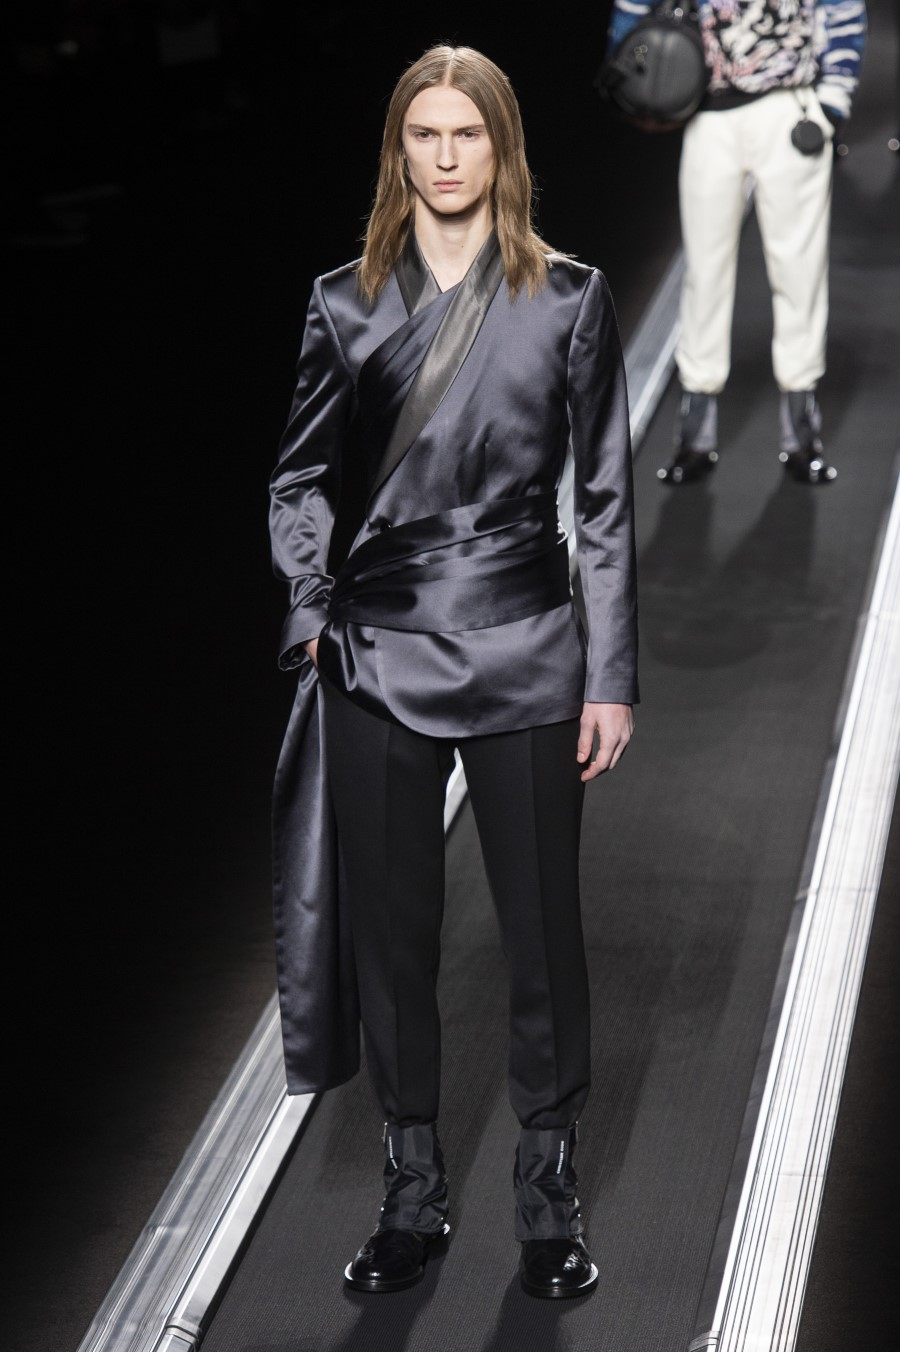 Dior Men Fall Winter 2019 - Paris Fashion Week